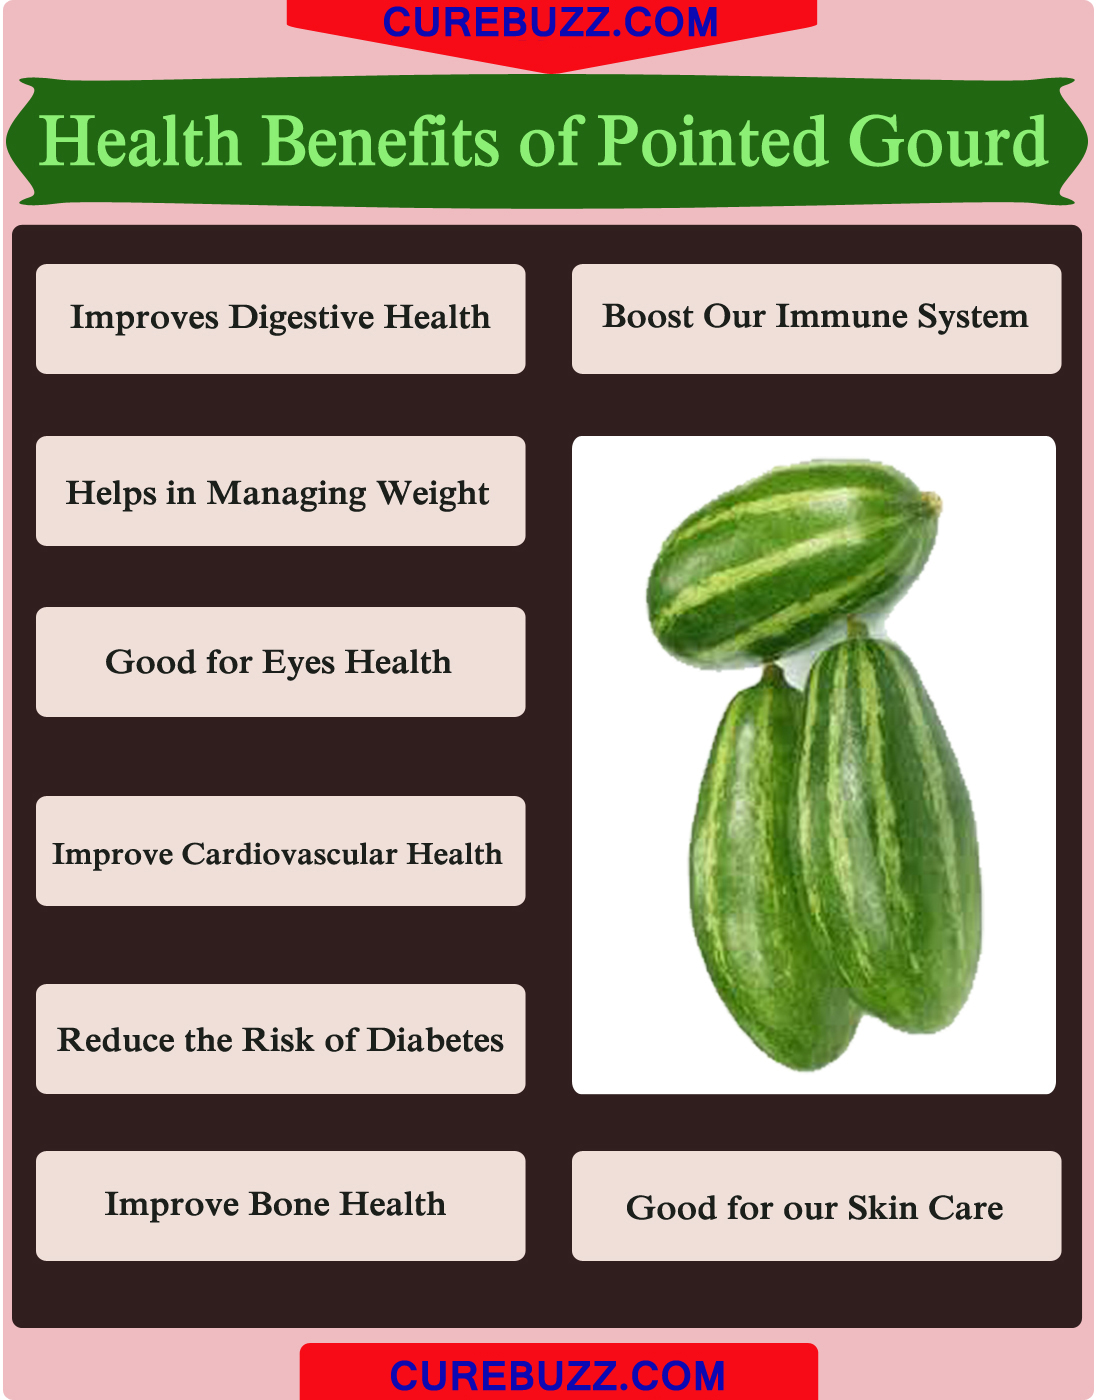 Health Benefits of Pointed Gourd